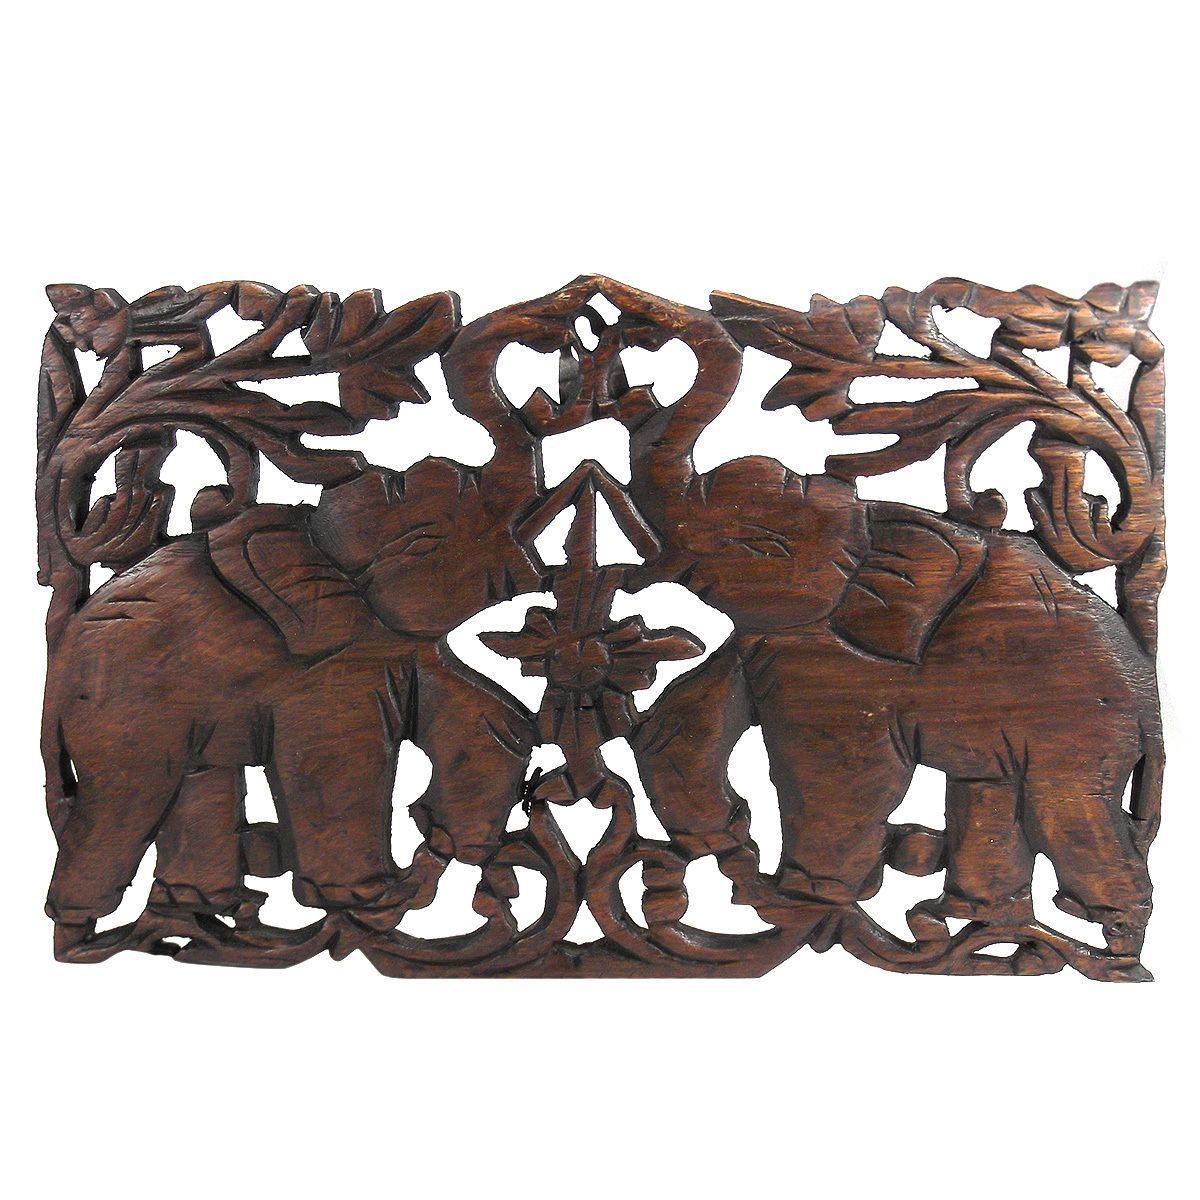 A pair of graceful elephant dance and hold their trunks high in jubilant thai elephant hand carved teak wood wall art thailand overstock shopping big discounts on statues sculptures buycottarizona